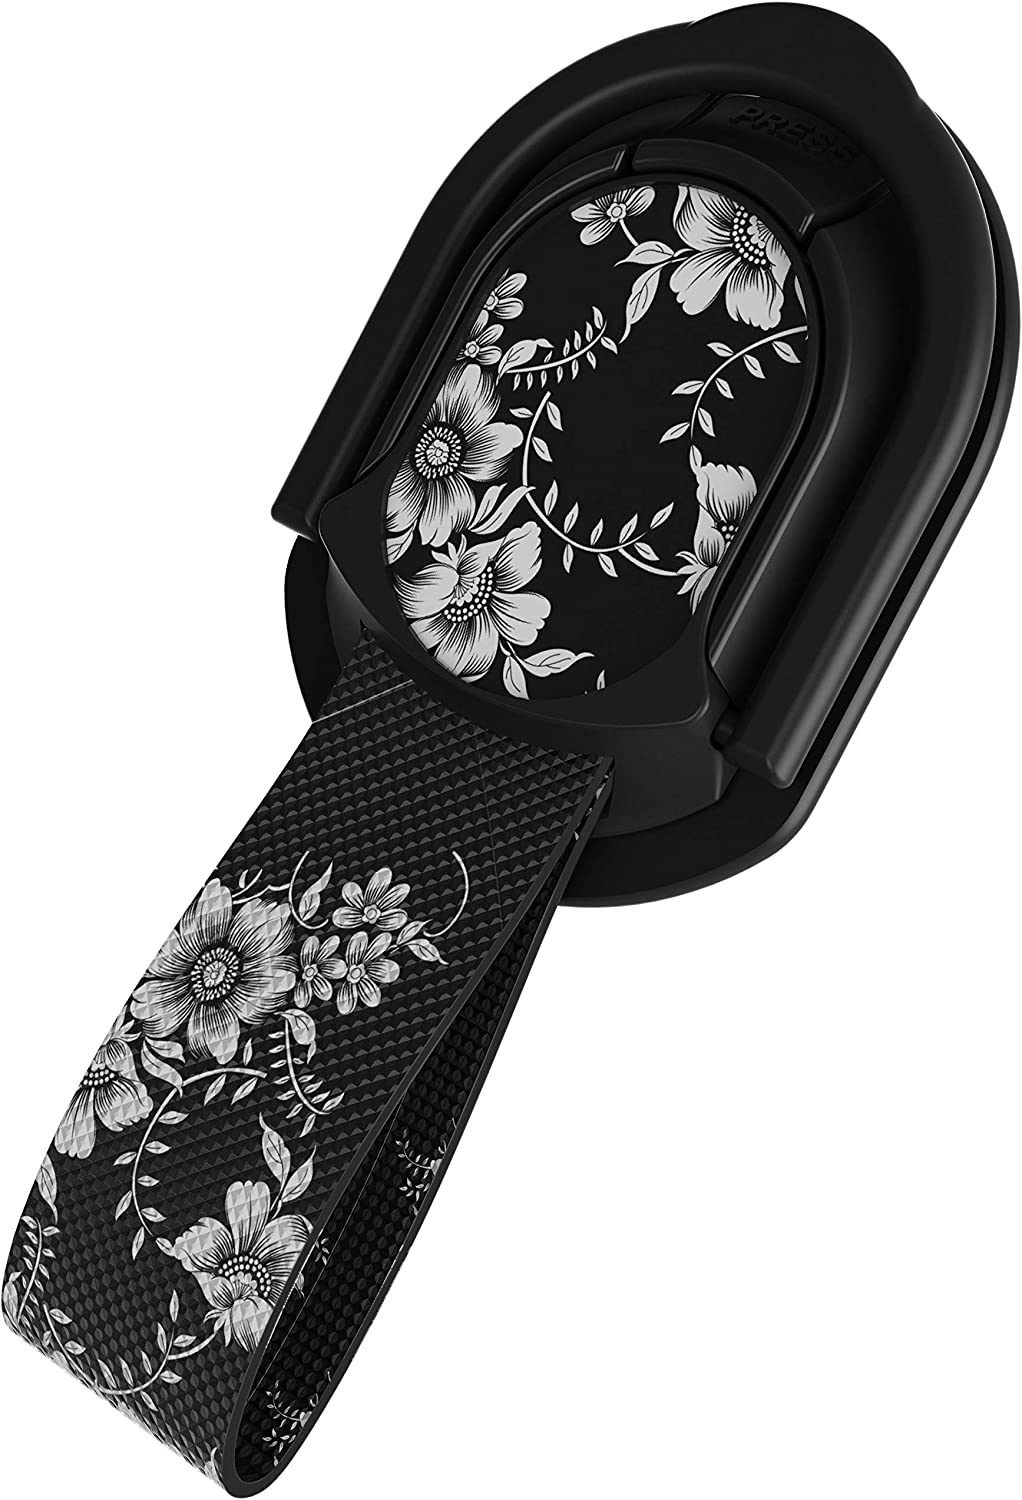 Ghostek Loop Magnetic Cell Phone Finger Holder Strap with Kickstand for Women Girls Trendy Swappable Designs Handy Clumsy Proof Grip Handle & Magnet Mount Wireless Charging Compatible - (Floral Black)